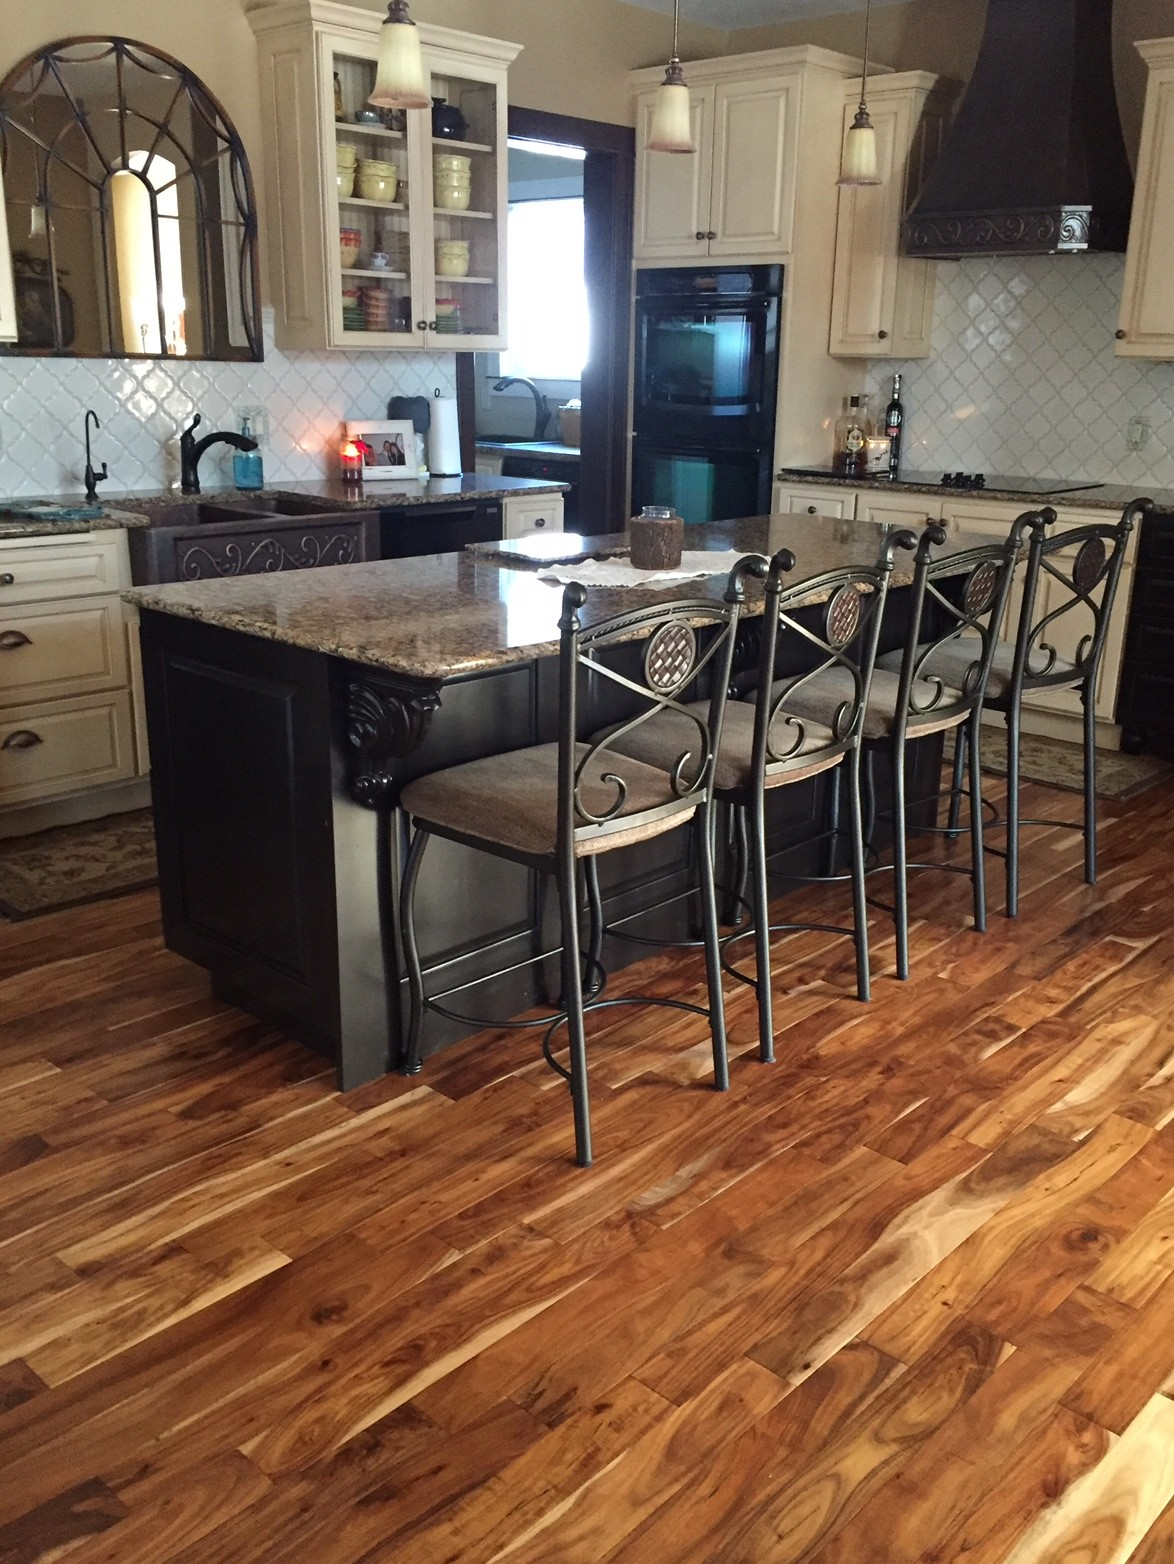 Engineered Wood Flooring In Kitchen Acacia Natural Engineered Wood Flooring All About Flooring Designs